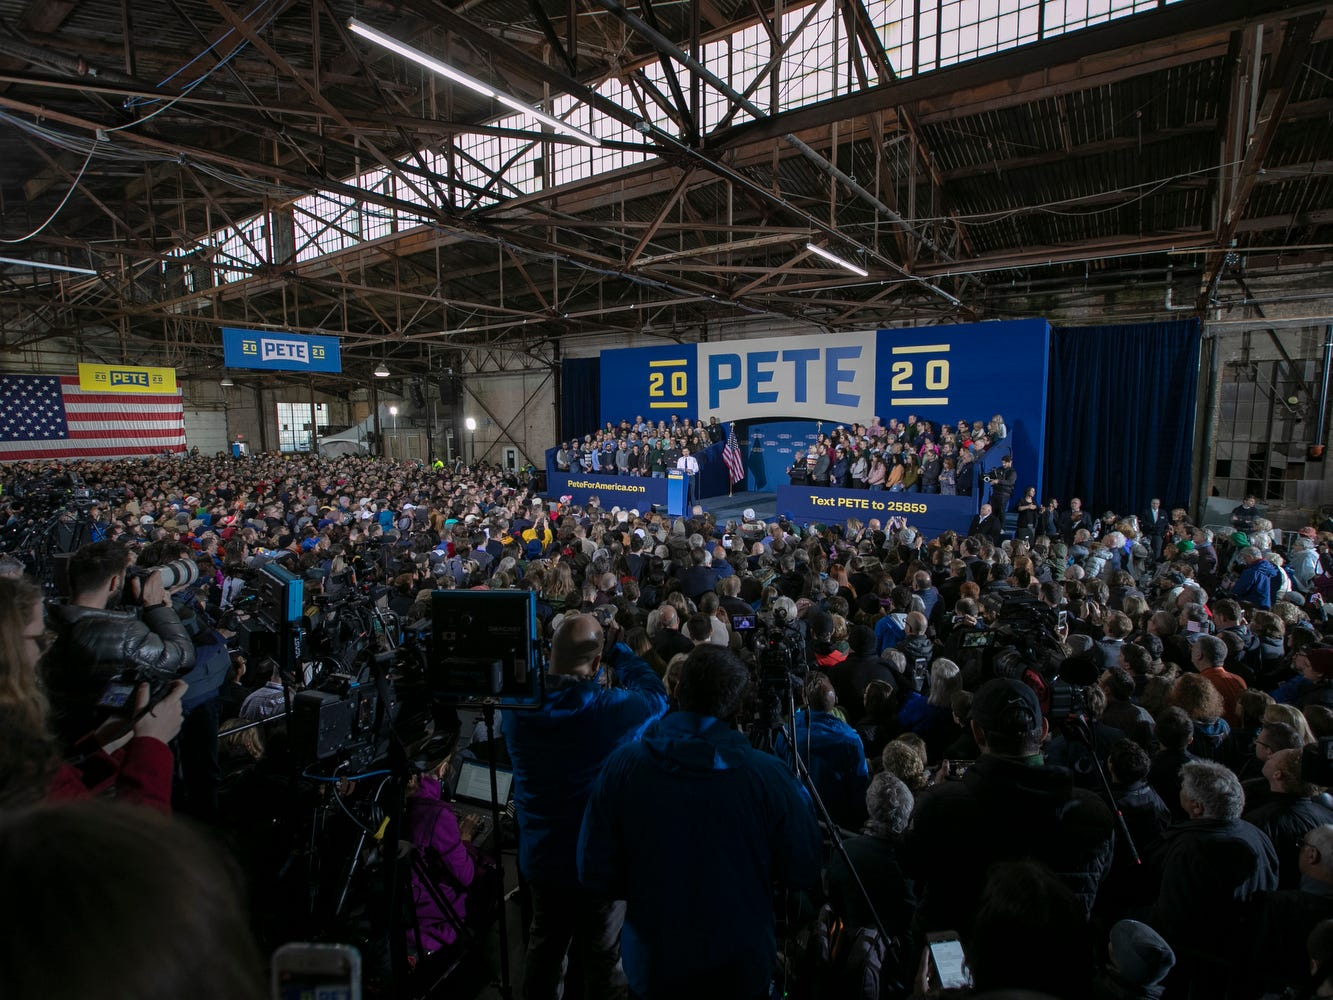 A rally for Pete Buttigieg, the mayor of South Bend, who announced on Sunday, April 14, 2019, that he is running for U.S. president.